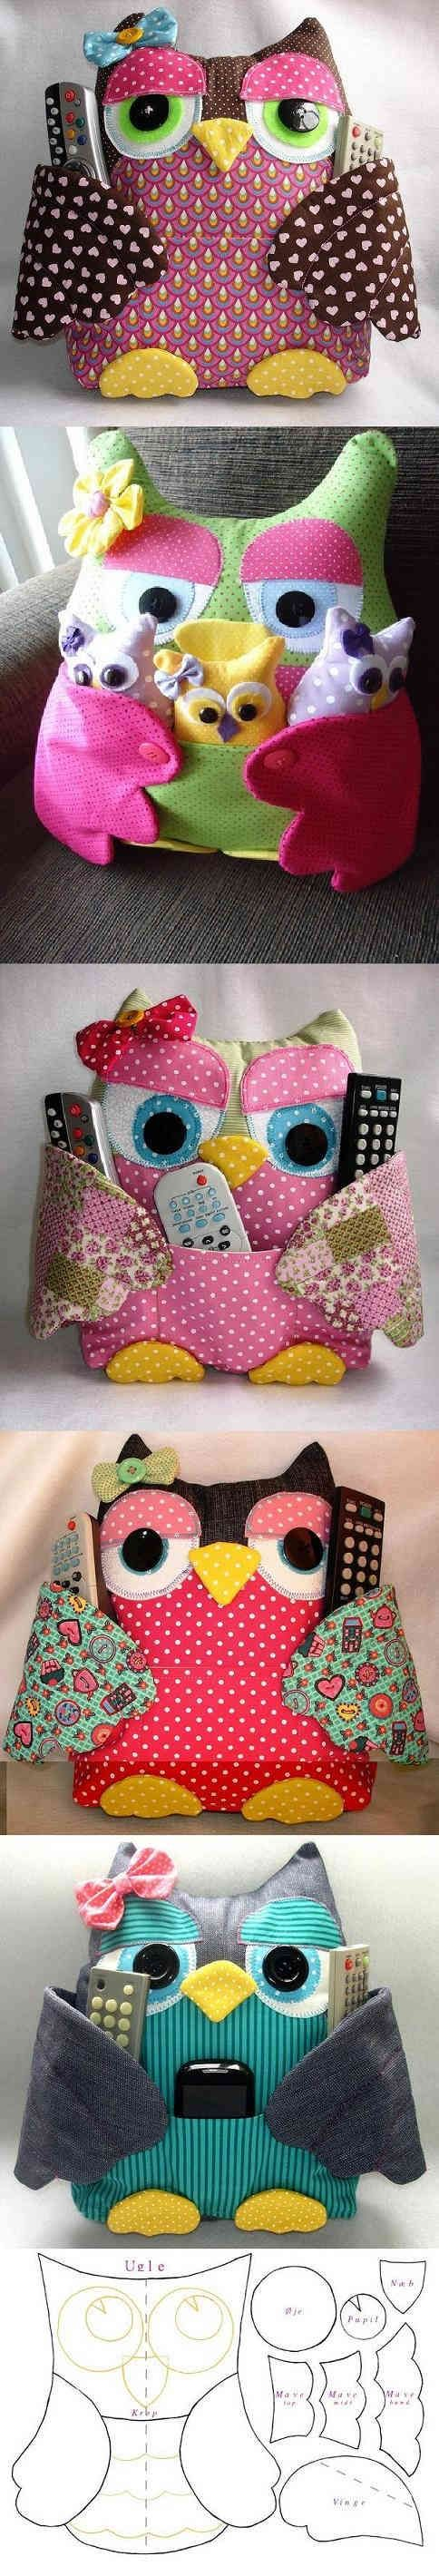 DIY Owl Pad with Pockets....too cute.  New project :)